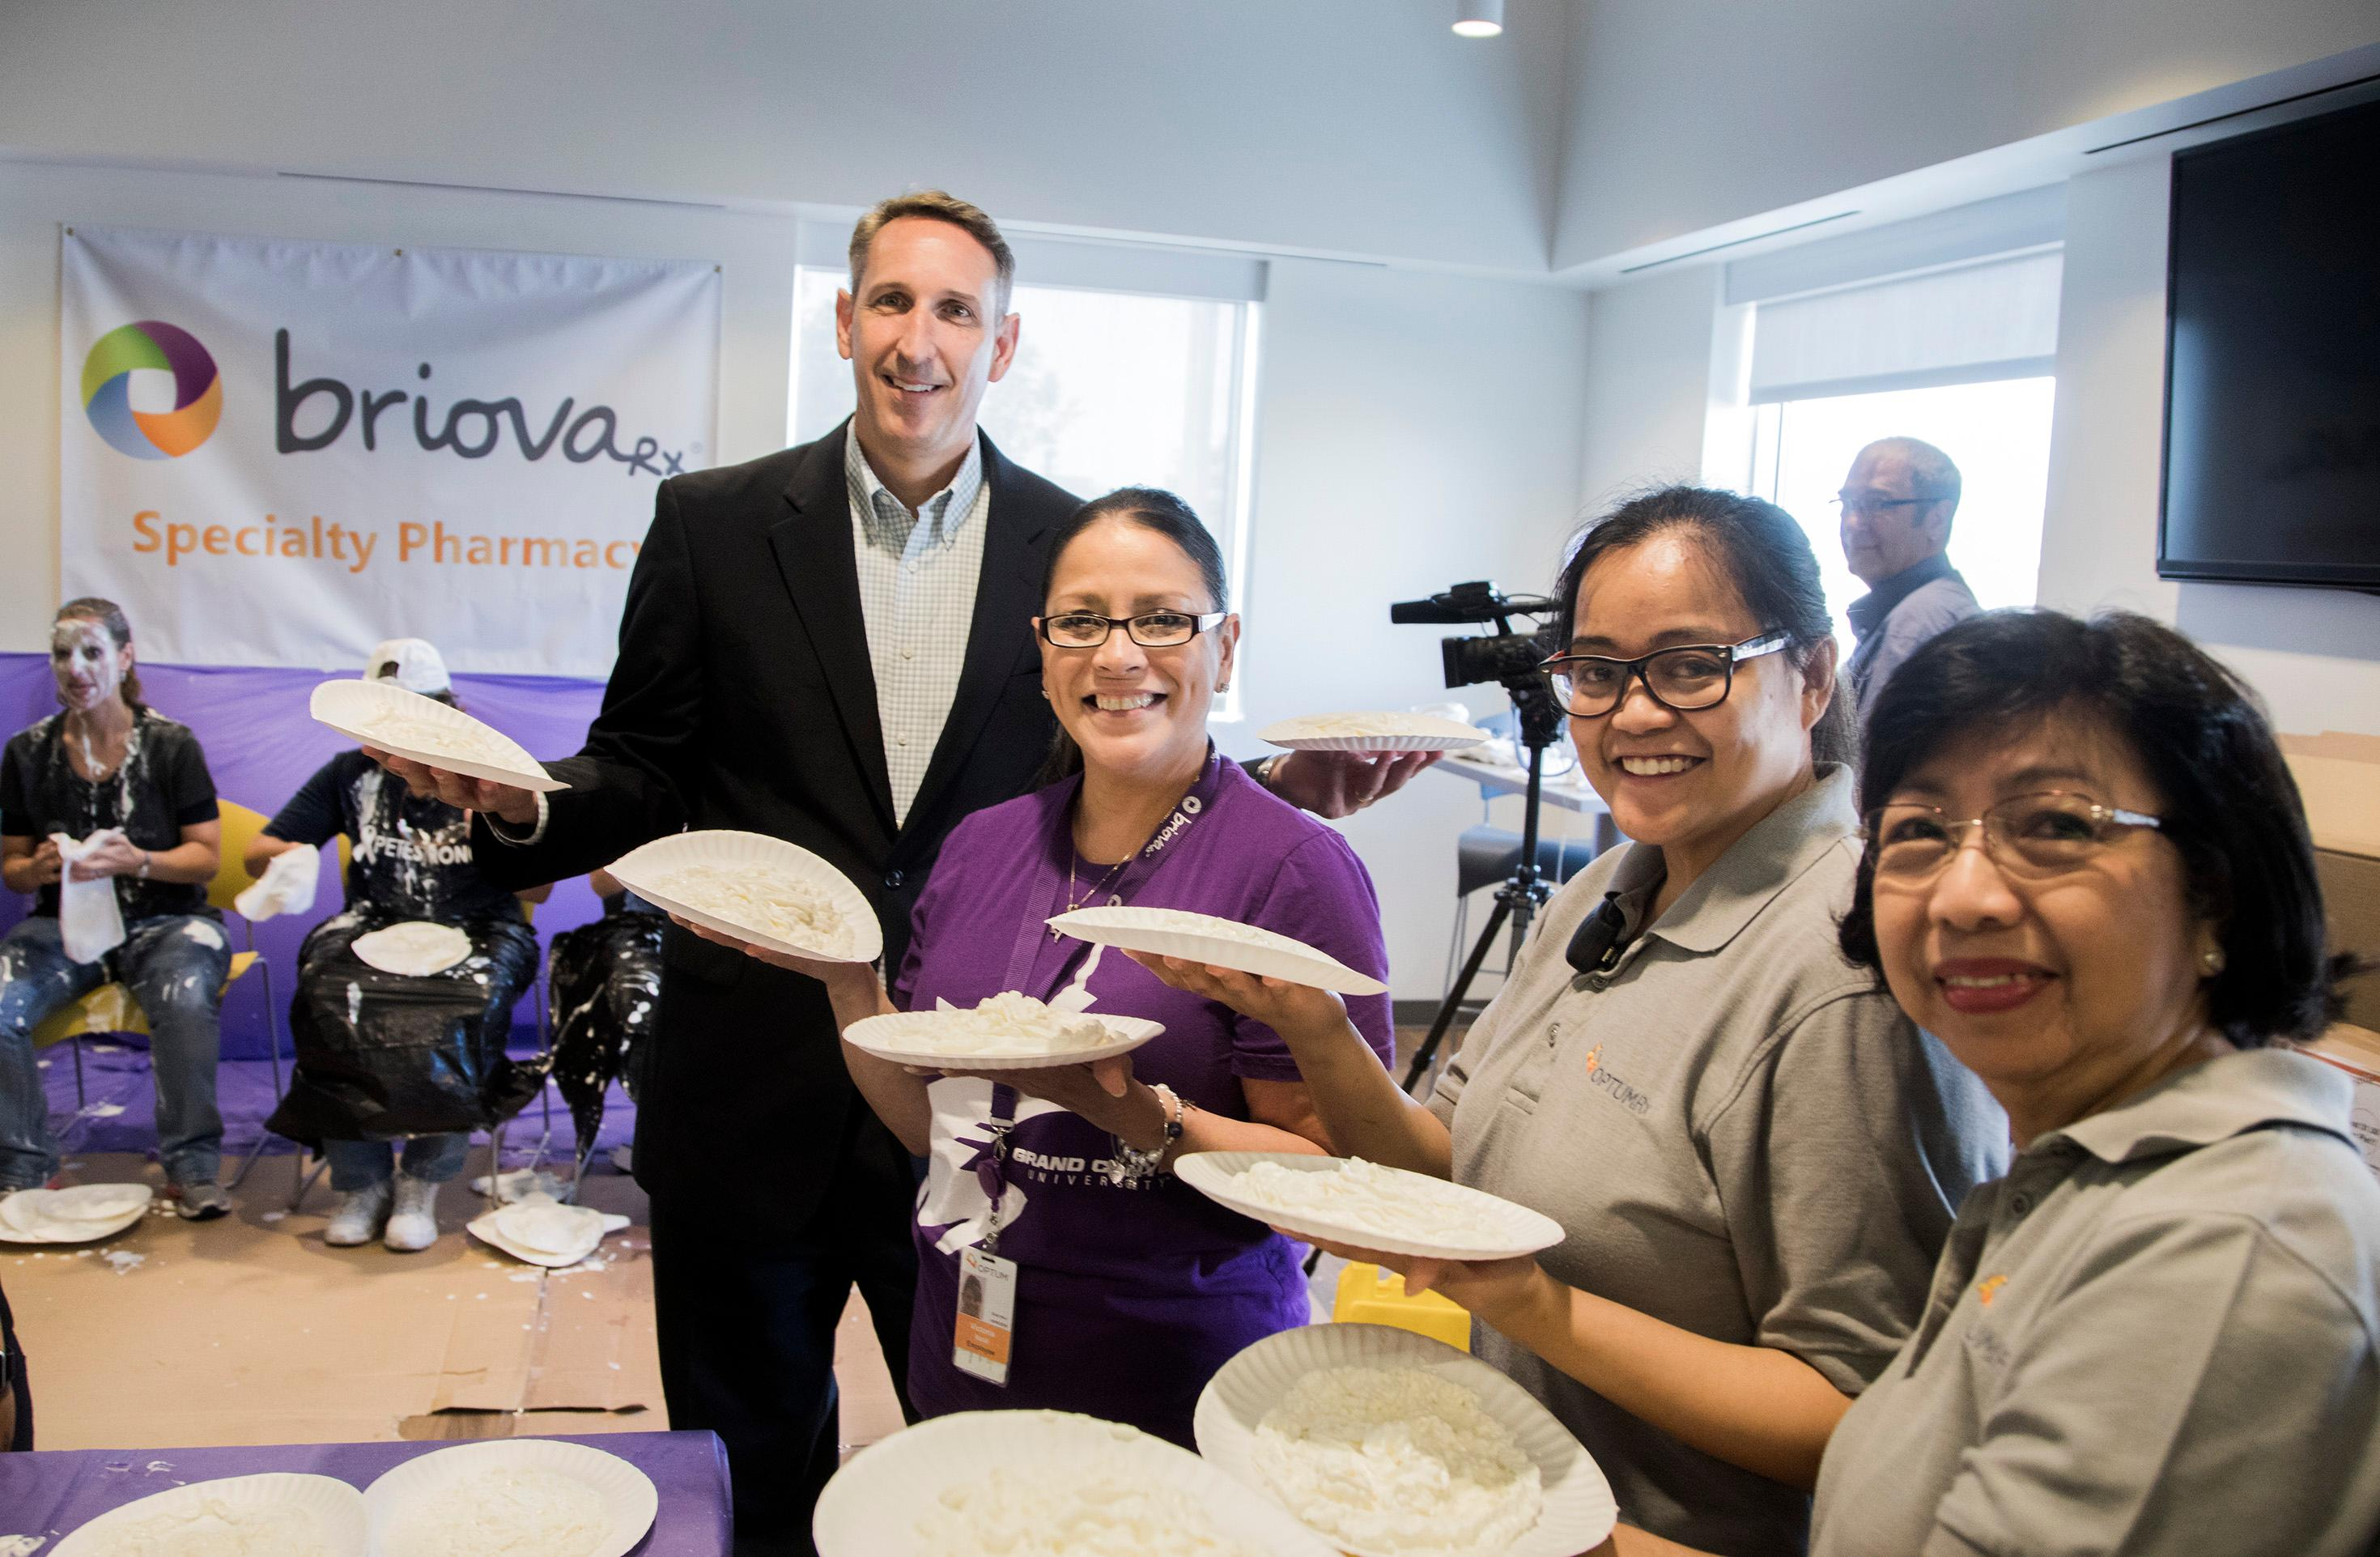 State Sen. Scott Hammond and Optum employees Victoria Natal, Eloisa Macapagal and Emelinda McManus show off the pies that will be thrown Wednesday, July 26, 2017, at senior leaders to raise funds for the Southern Nevada Chapter of the Leukemia & Lymphoma Society and recruit people to participate in its 2017 Light the Night Walk in November. (Photo courtesy of Jeff Scheid)